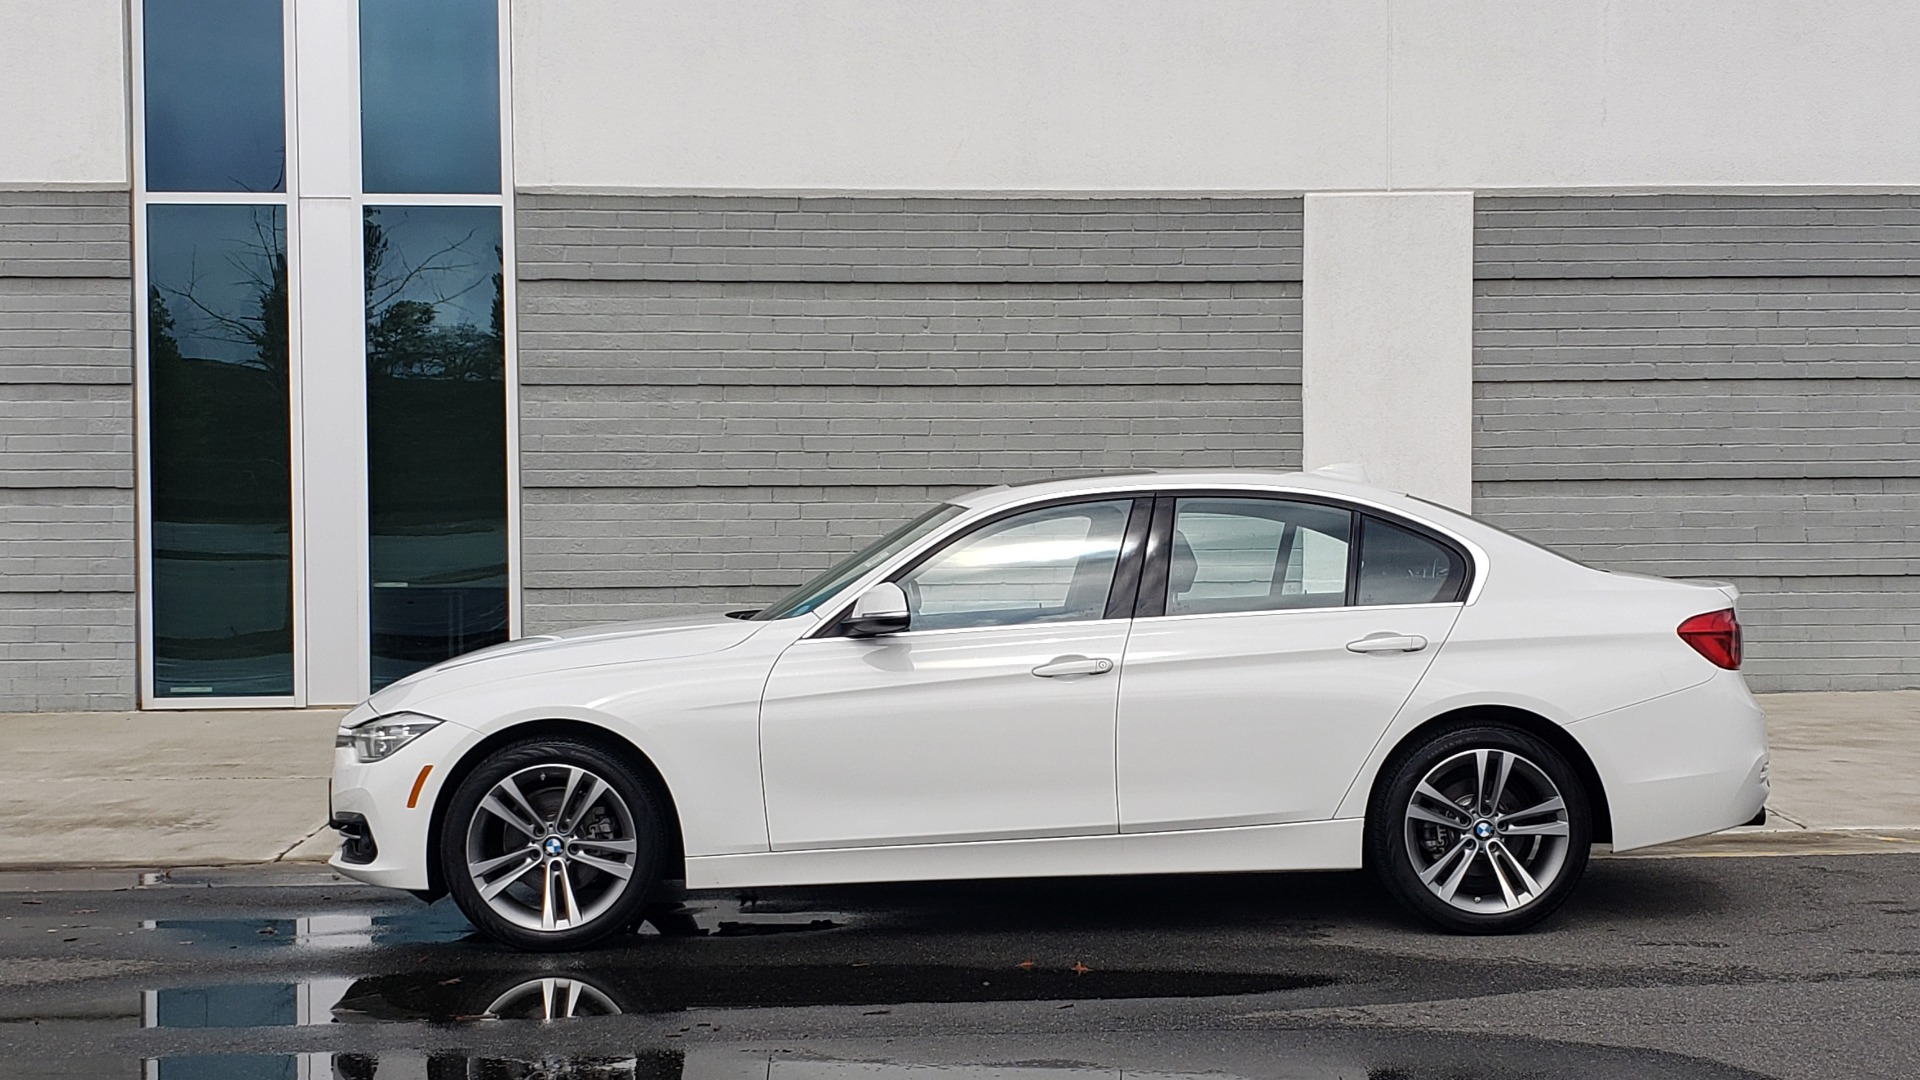 Used 2018 BMW 3 SERIES 330I XDRIVE / CONV PKG / SUNROOF / HTD STS / REARVIEW for sale $24,795 at Formula Imports in Charlotte NC 28227 8